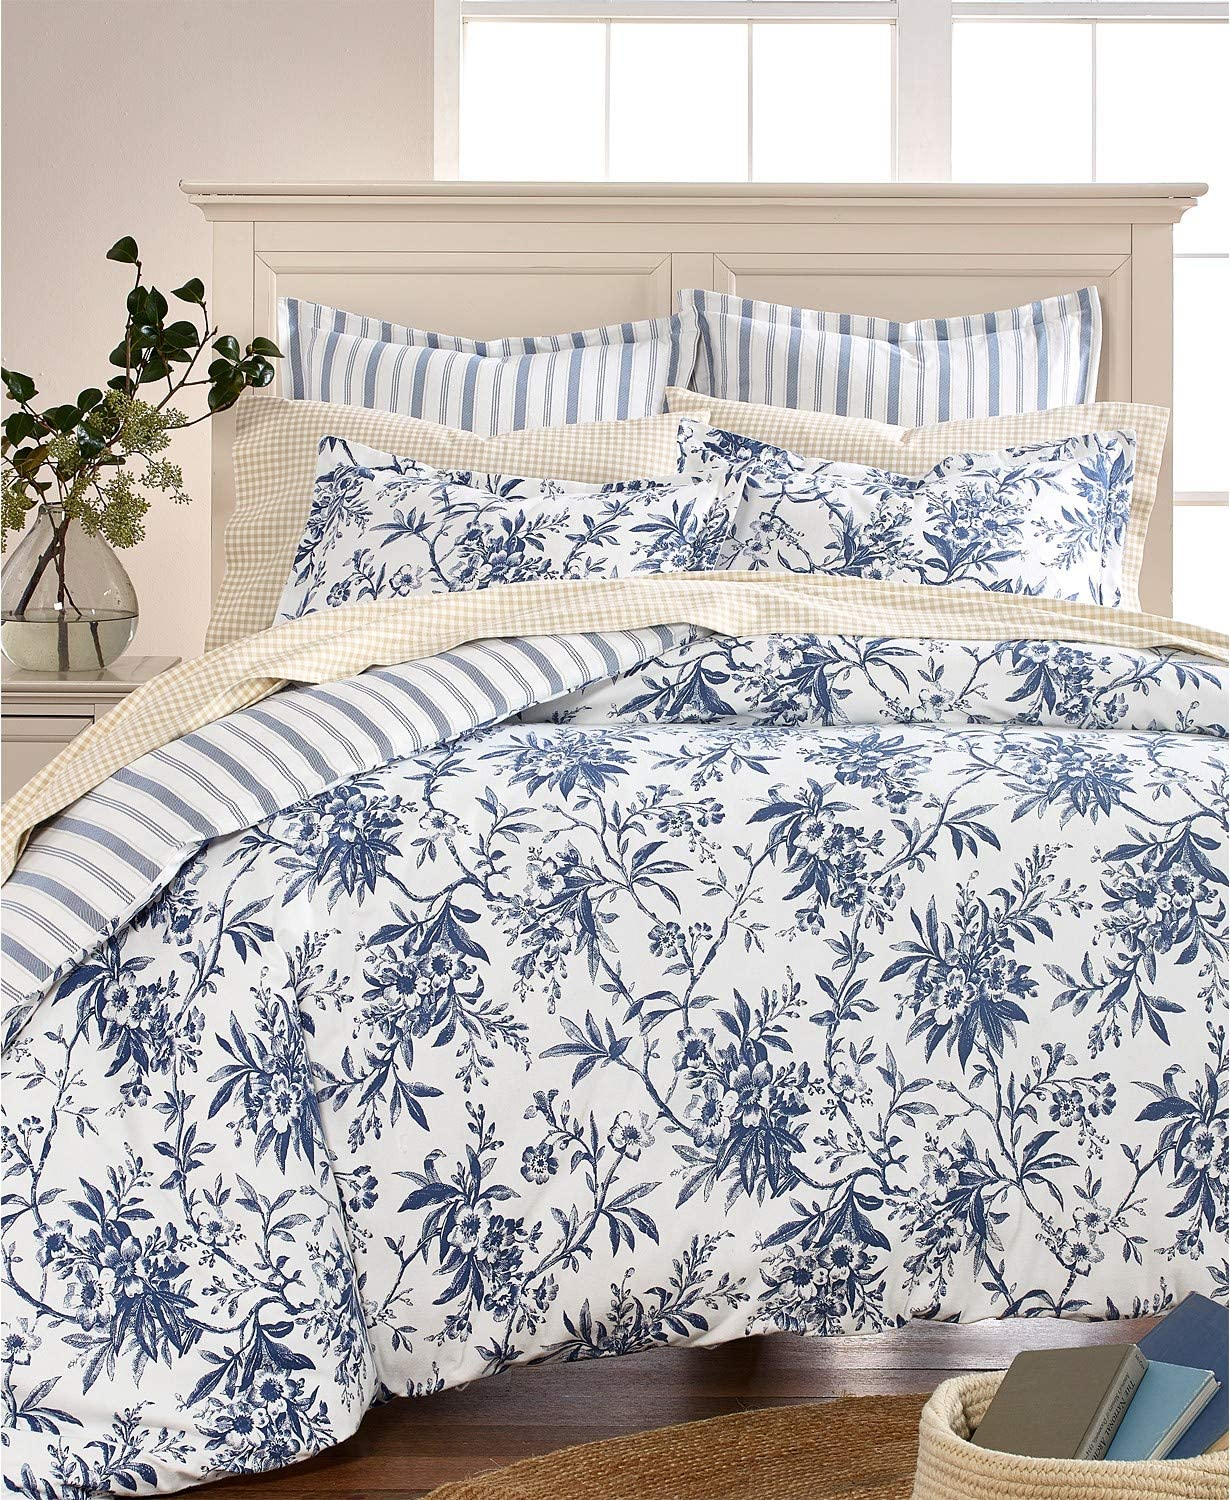 Amazon Com Martha Stewart Collection Cozy Toile Cotton Flannel Full Queen Reversible Duvet Cover Home Kitchen